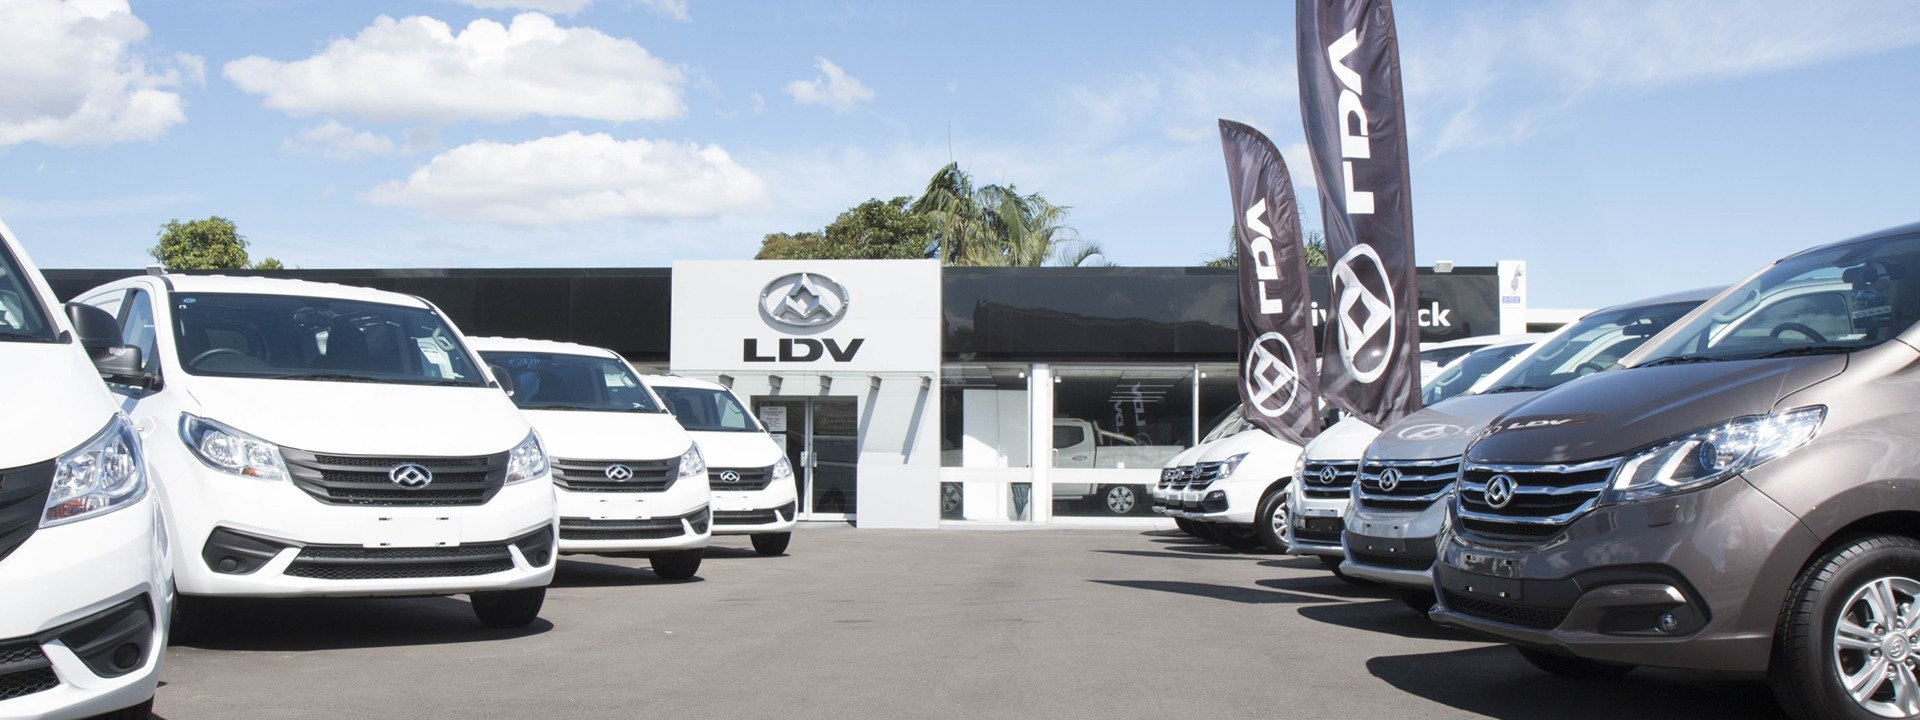 ldv five dock ldv dealership